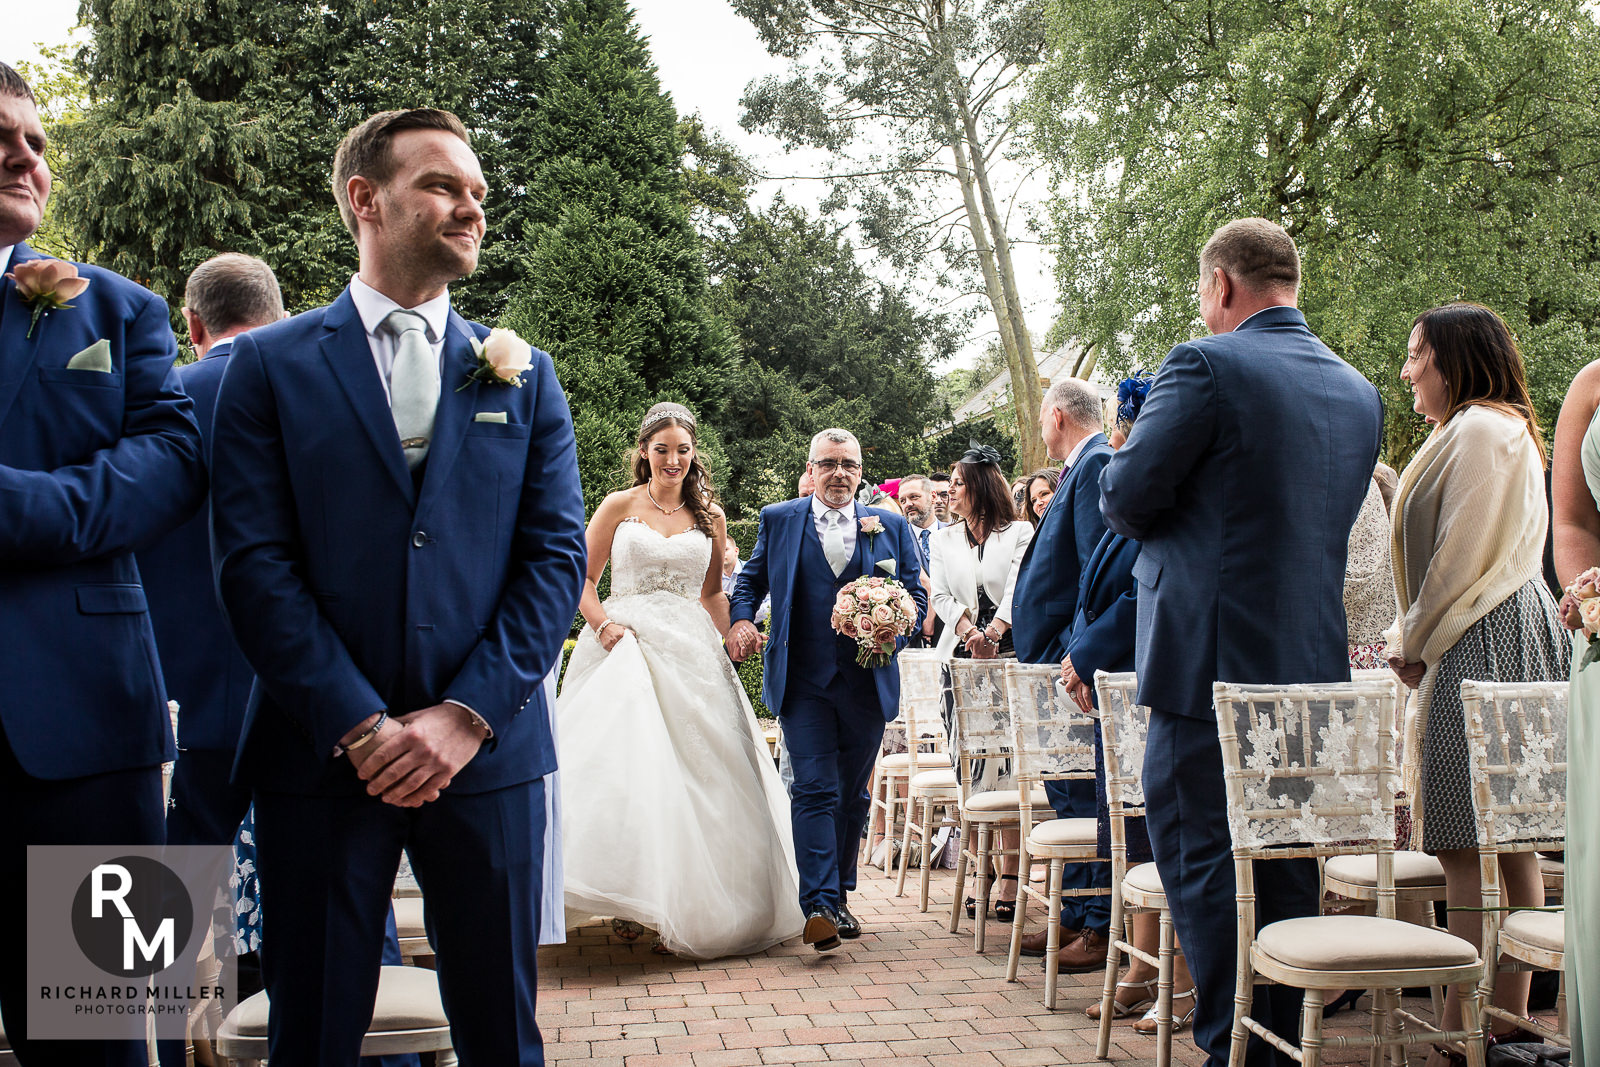 P R 12 - Pete & Roxy's Soughton Hall Outdoor Wedding